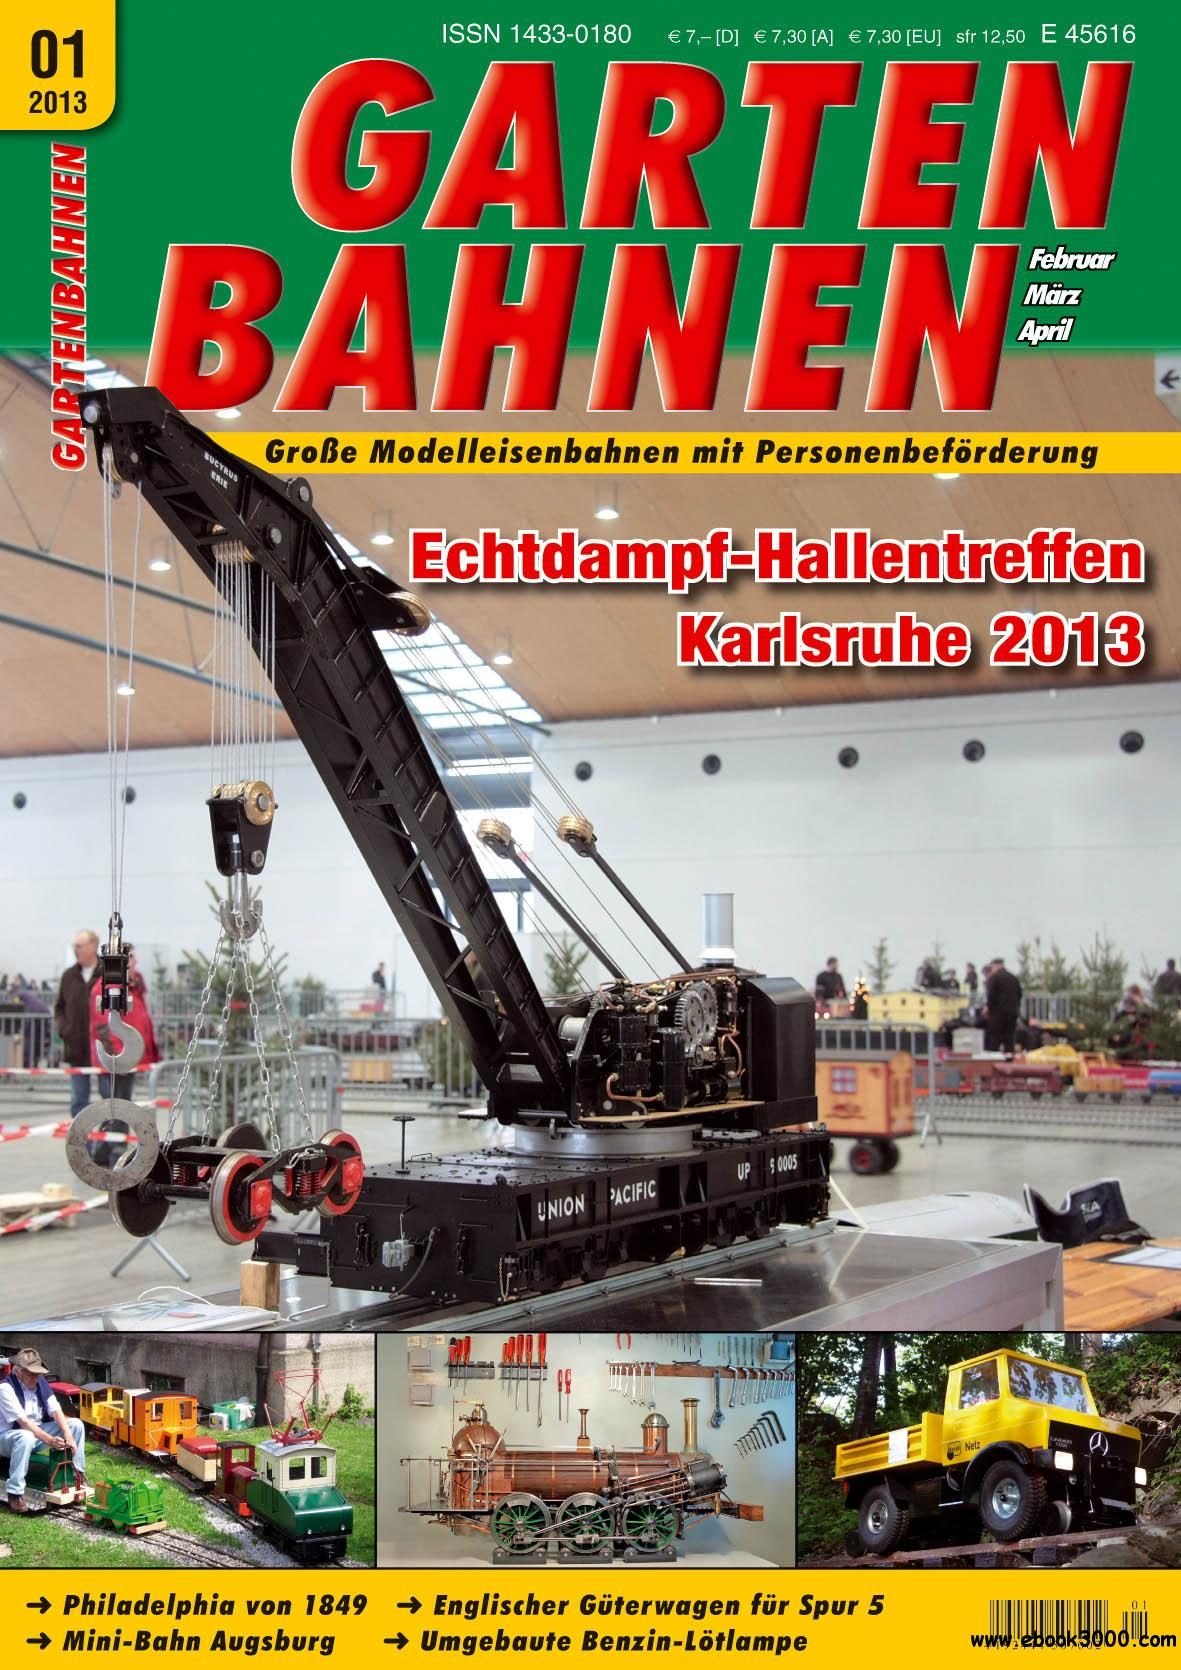 Gartenbahnen - Modelleisenbahnen Magazin Februar/Marz/April 01/2013 free download